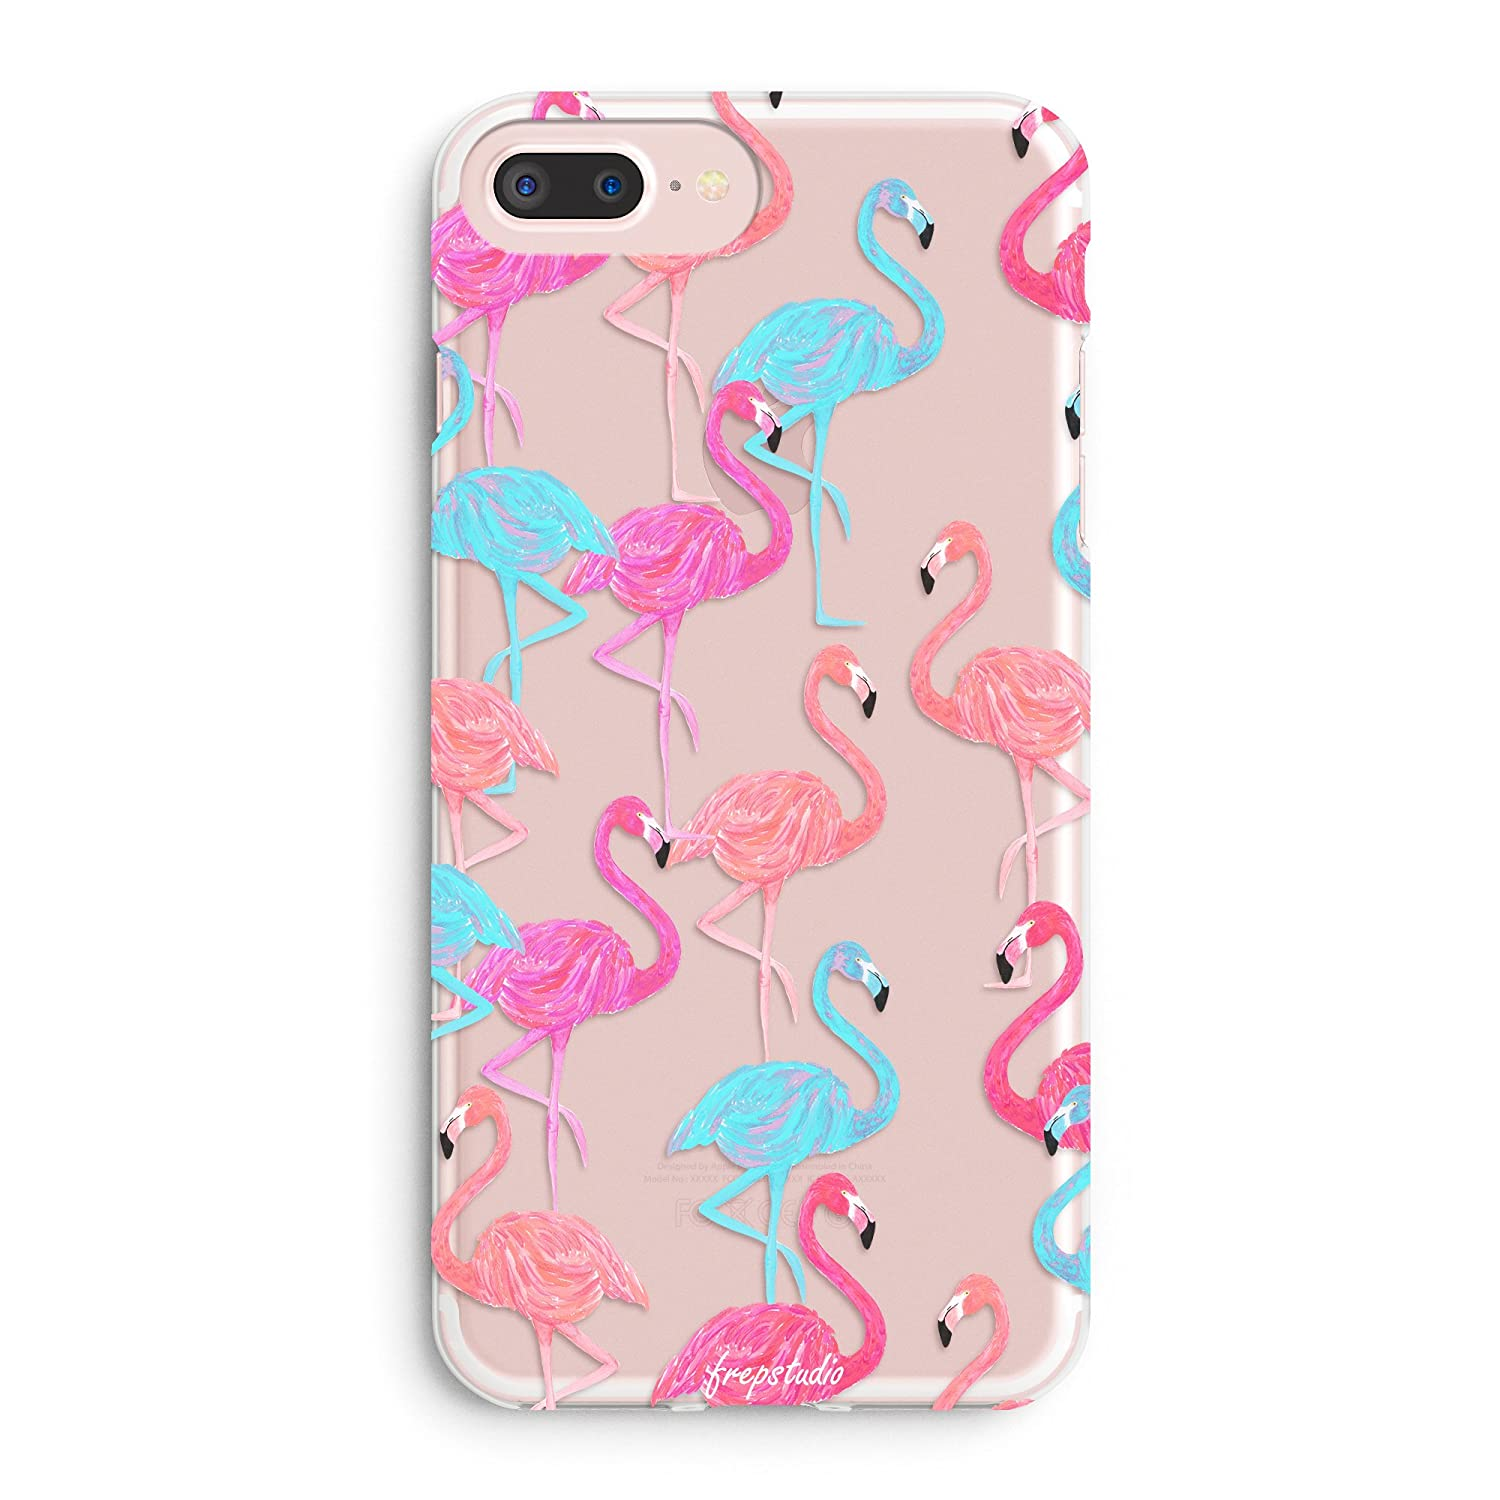 hot sale online 1eec6 16ed2 iPhone 6 Plus Case,iPhone 6s Plus Case,Aloha Summer Pink Fashion Flamingos  Colorful Cute Tropical Pink Animal Bird Girls Spring Hawaii Overload ...